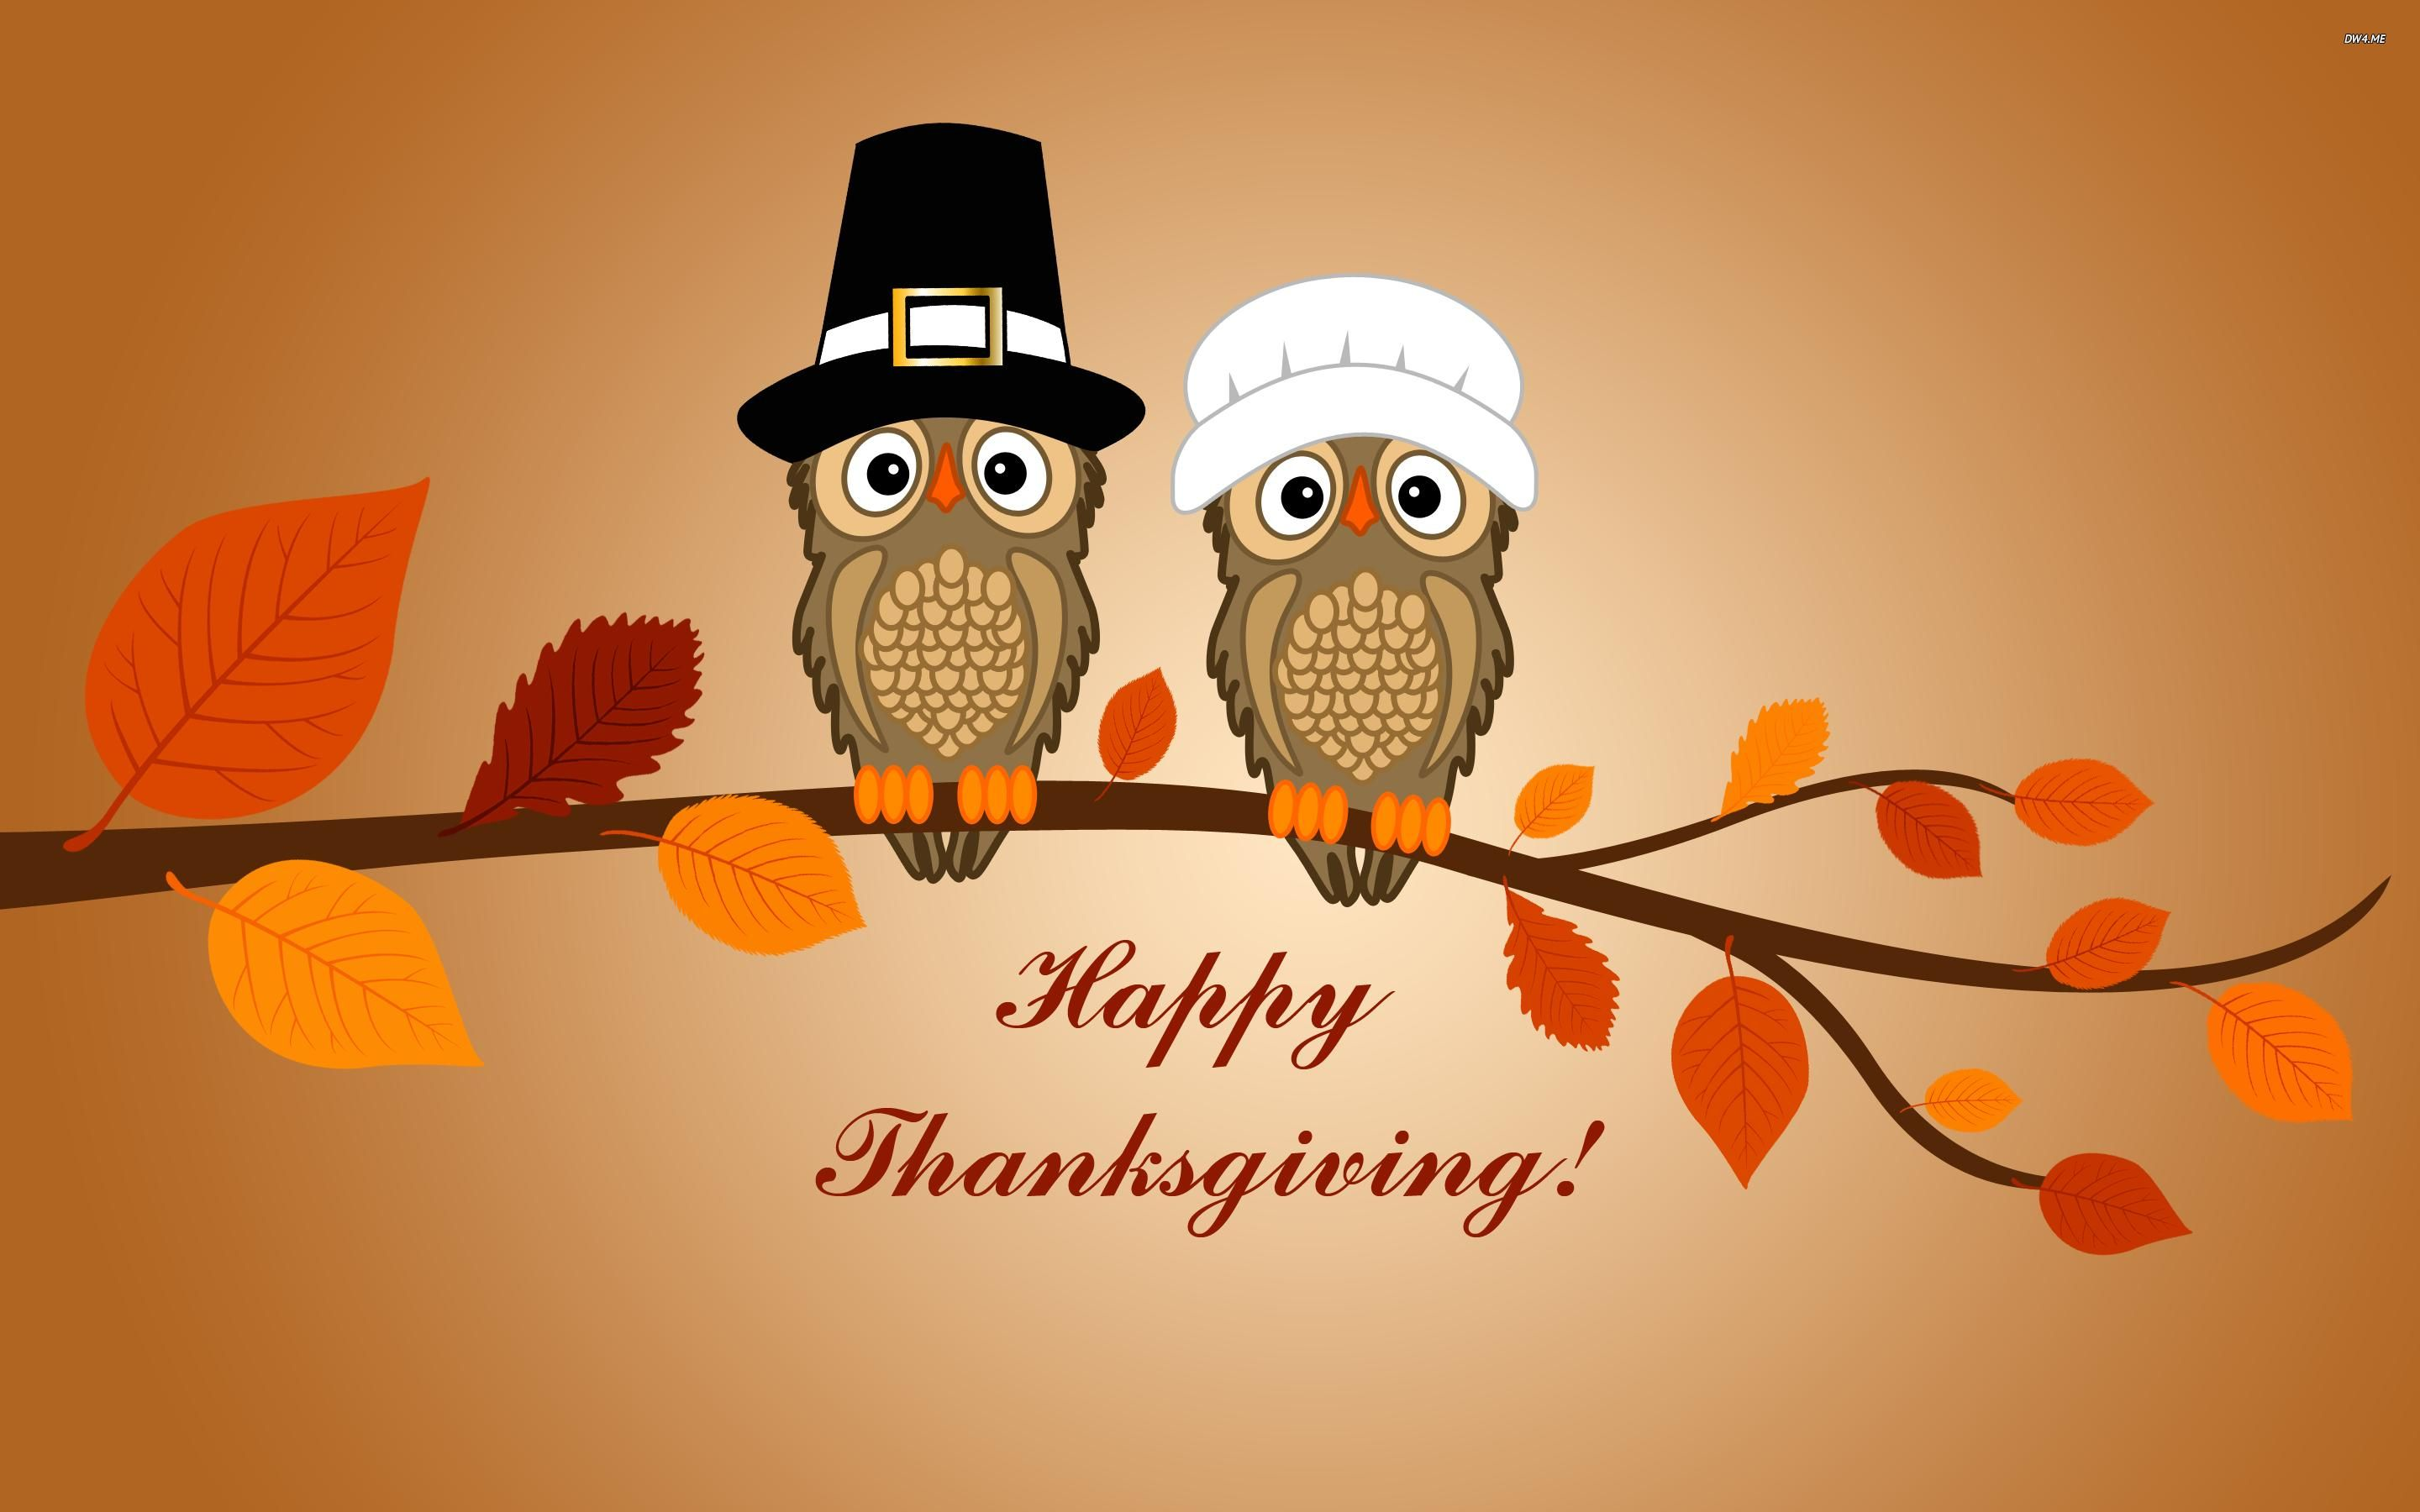 Collection Top 30 Cute Thanksgiving Desktop Wallpaper Hd Download Happy Thanksgiving Images Thanksgiving Greetings Happy Thanksgiving Pictures